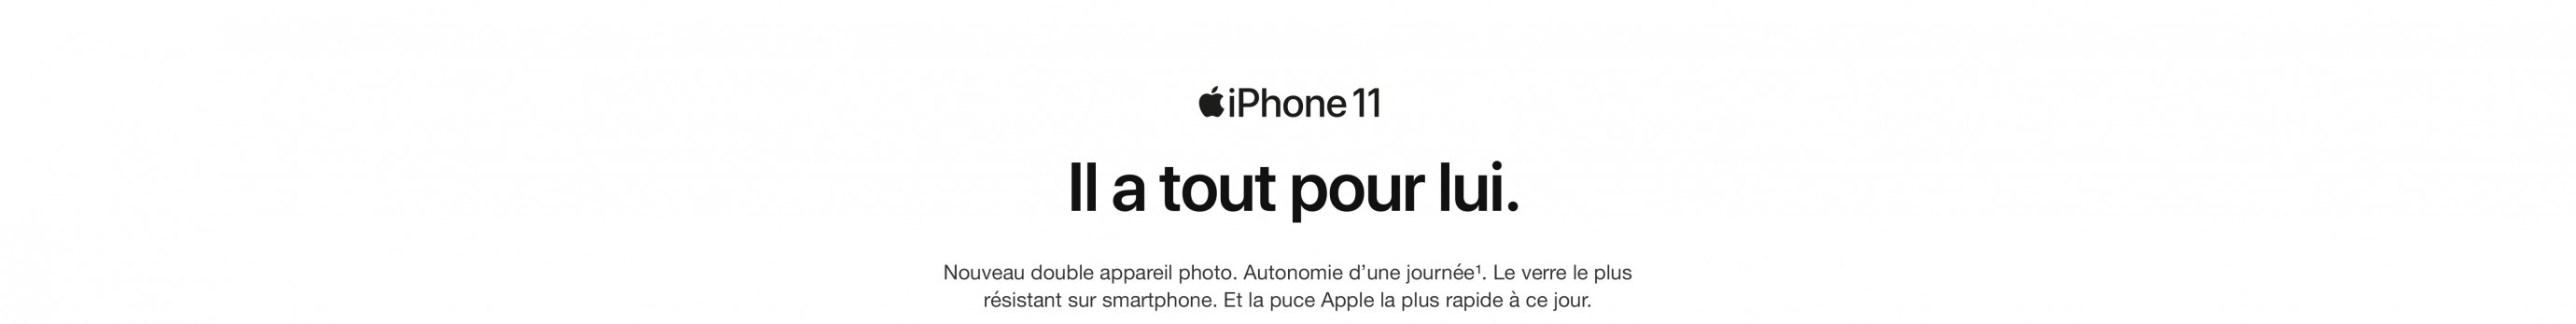 iPhone11-productpage-fr_01_01.jpg